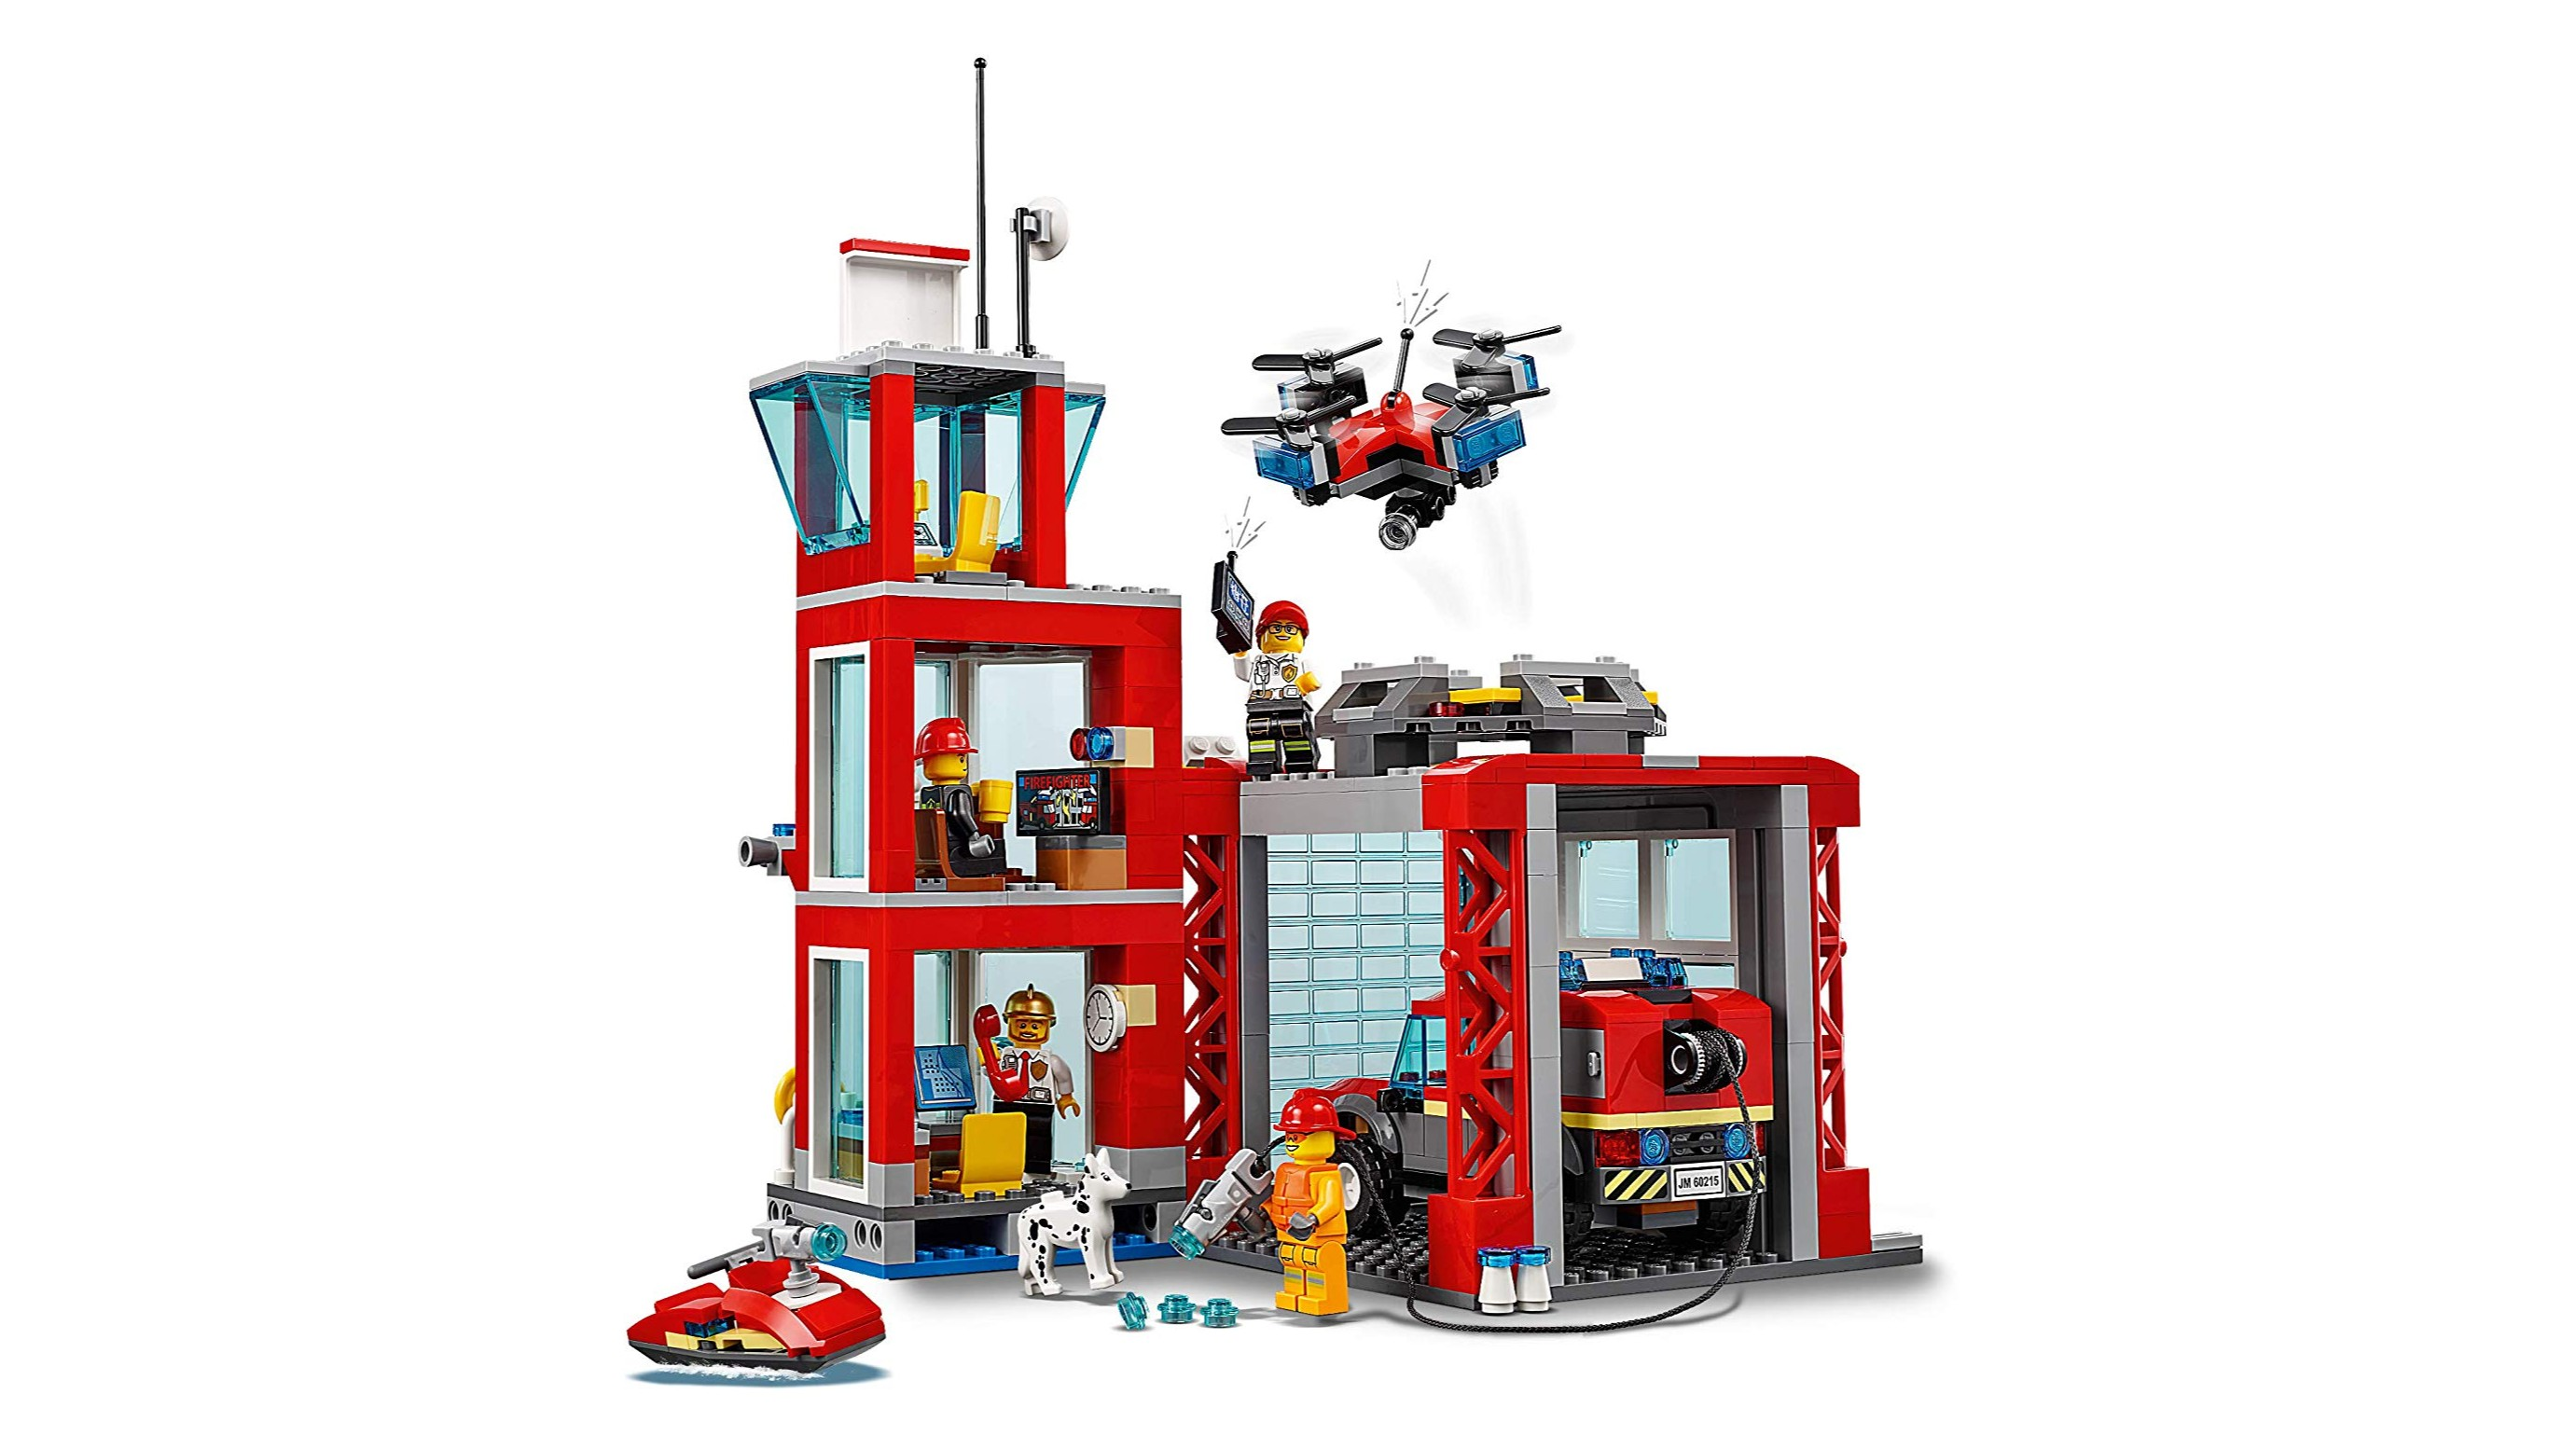 Best Lego City sets: Fire Station